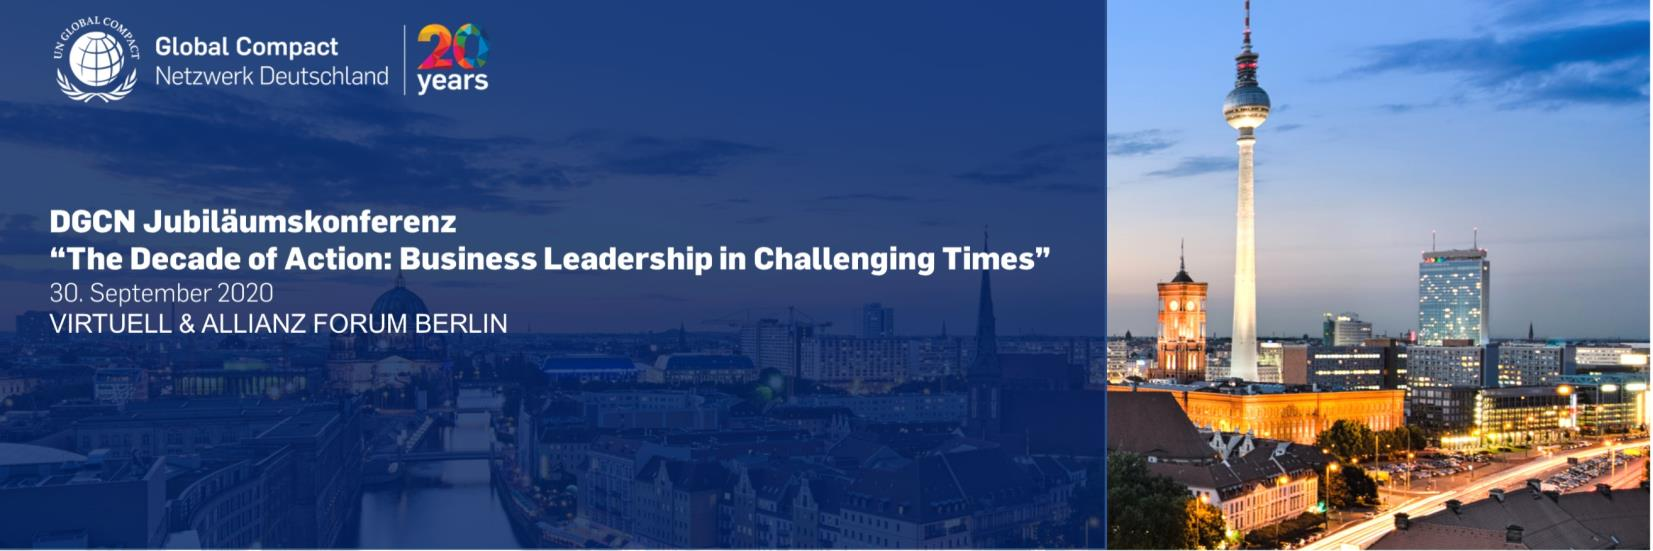 DGCN Jubiläumskonferenz: The Decade of action. Business Leadership in challenging times